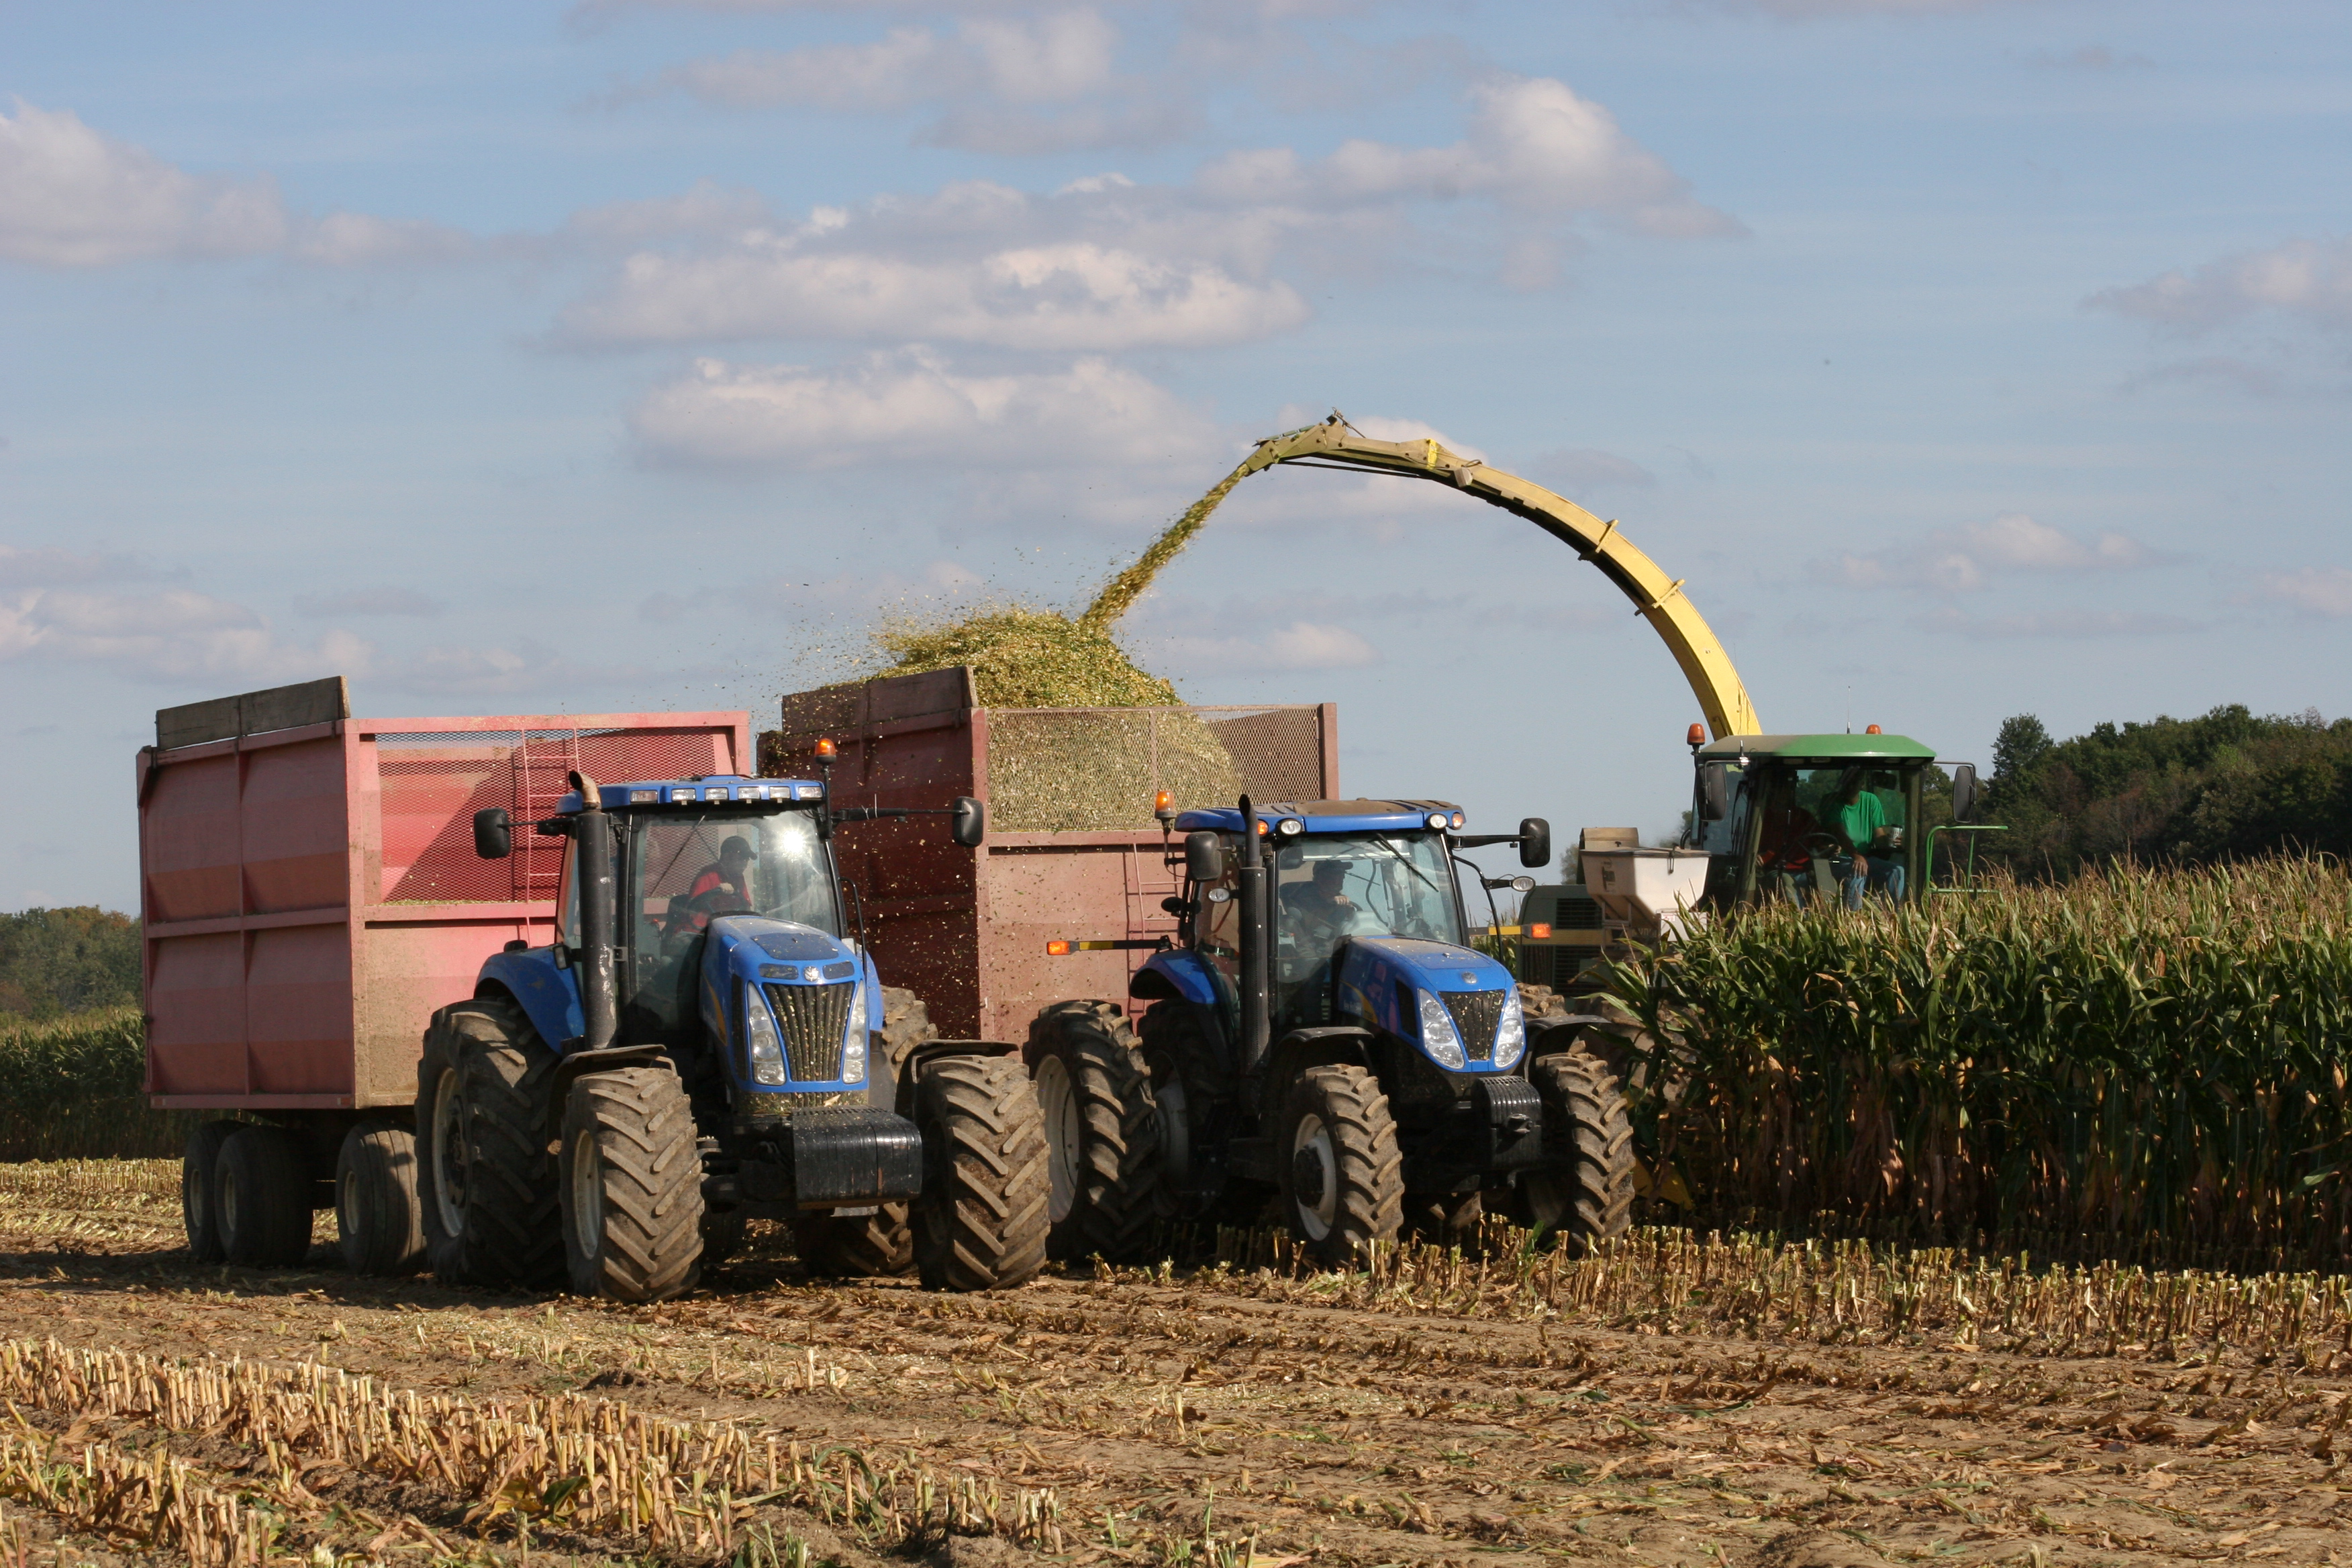 corn harvesting with combines, tractors, and bins